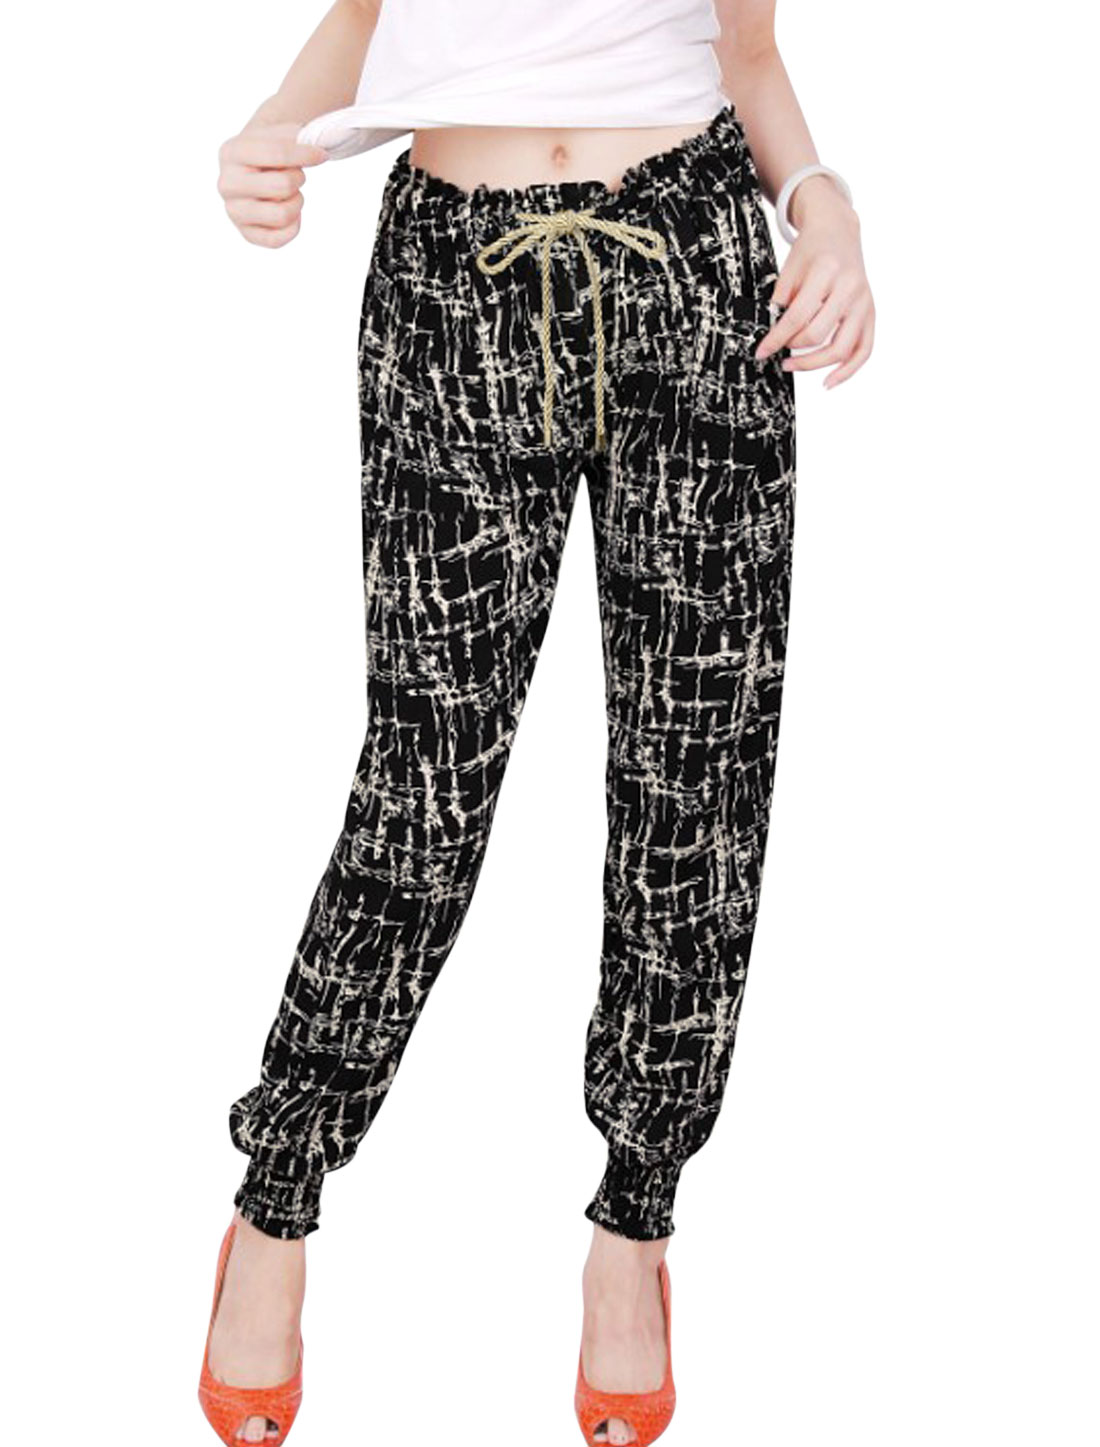 Lady All Over Print Front Pockets Elastic Waist Jogger Pants Beige Black XS